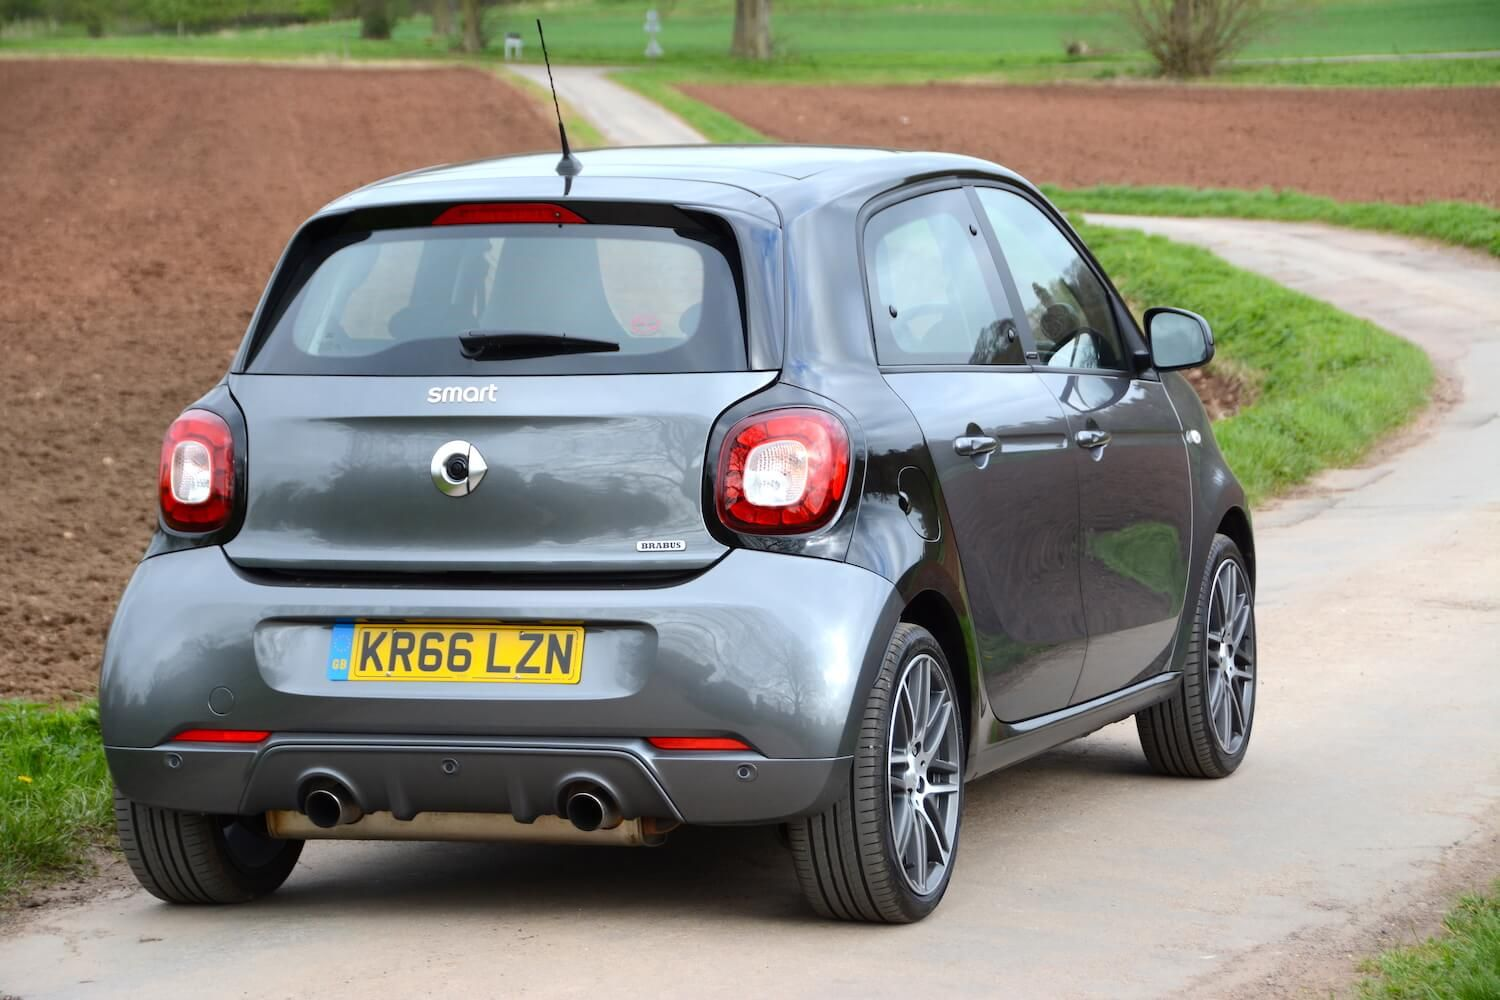 Renault twingo smart forfour 2015 coches pinterest smart forfour smart car and cars